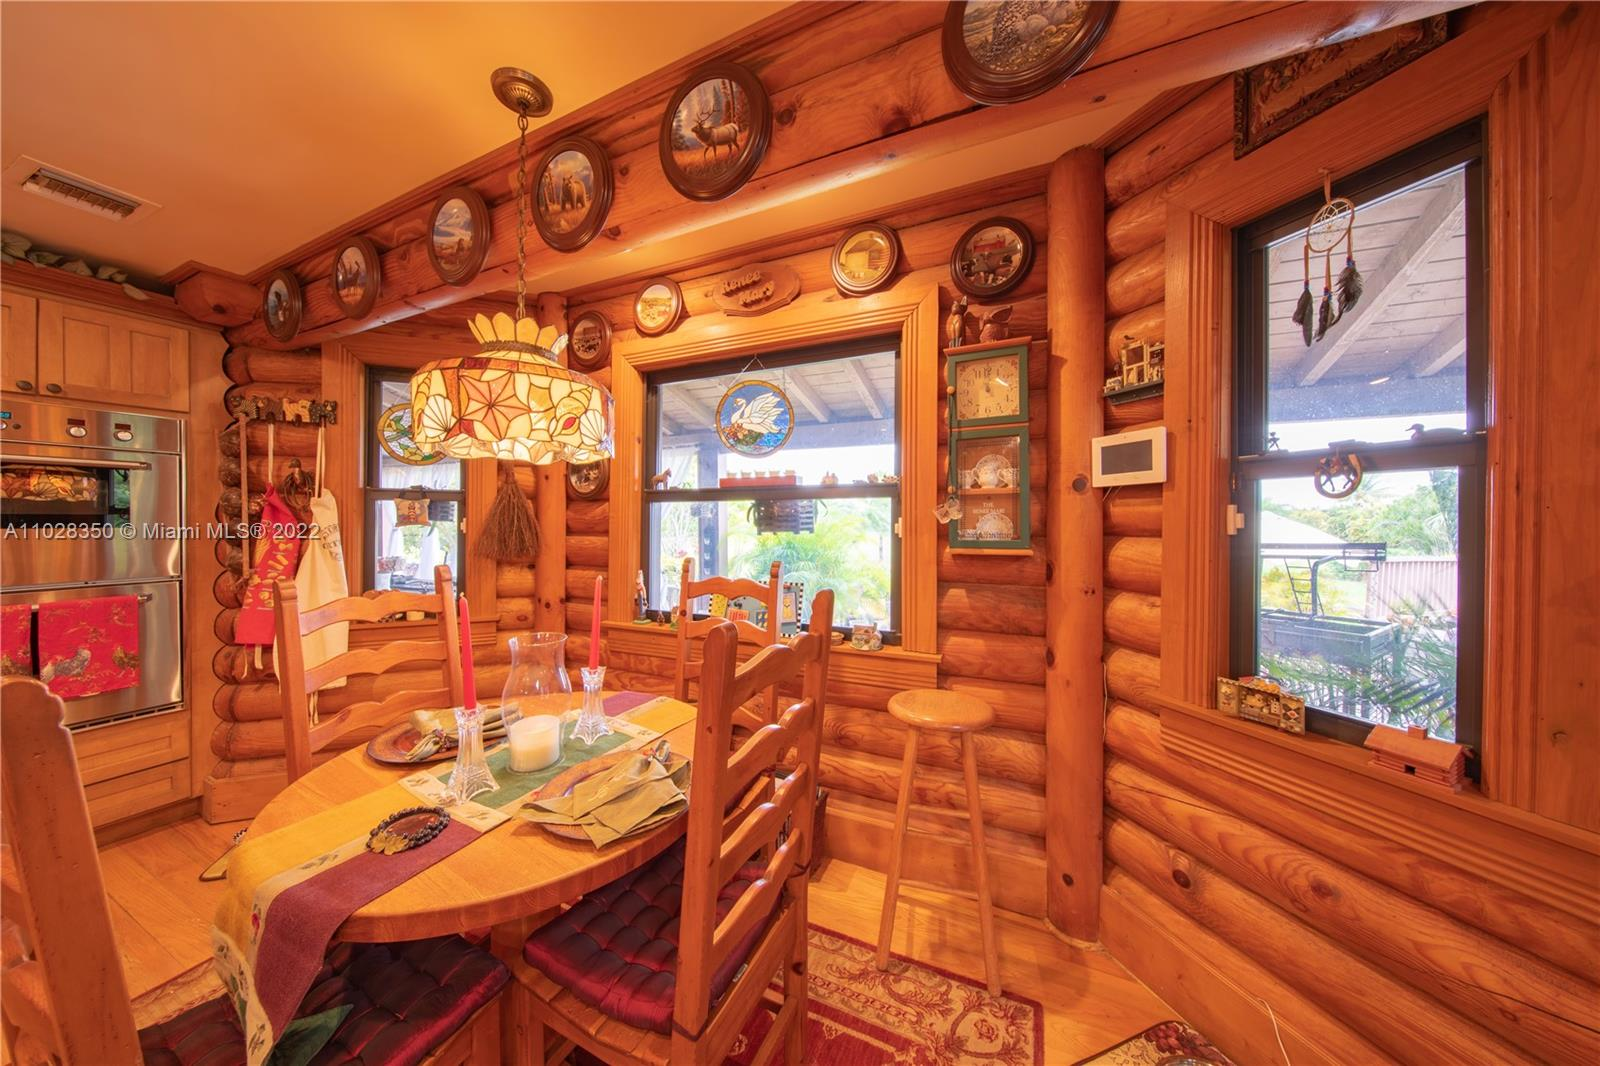 OVER VIEW OF POOL PATIO. ABOUT 3 ACRES IS CLEARLED AND READY FOR A 2ND HOME/BARN OR PLANT AS DESIRED GREAT SPACE WITH POND IN FRONT....